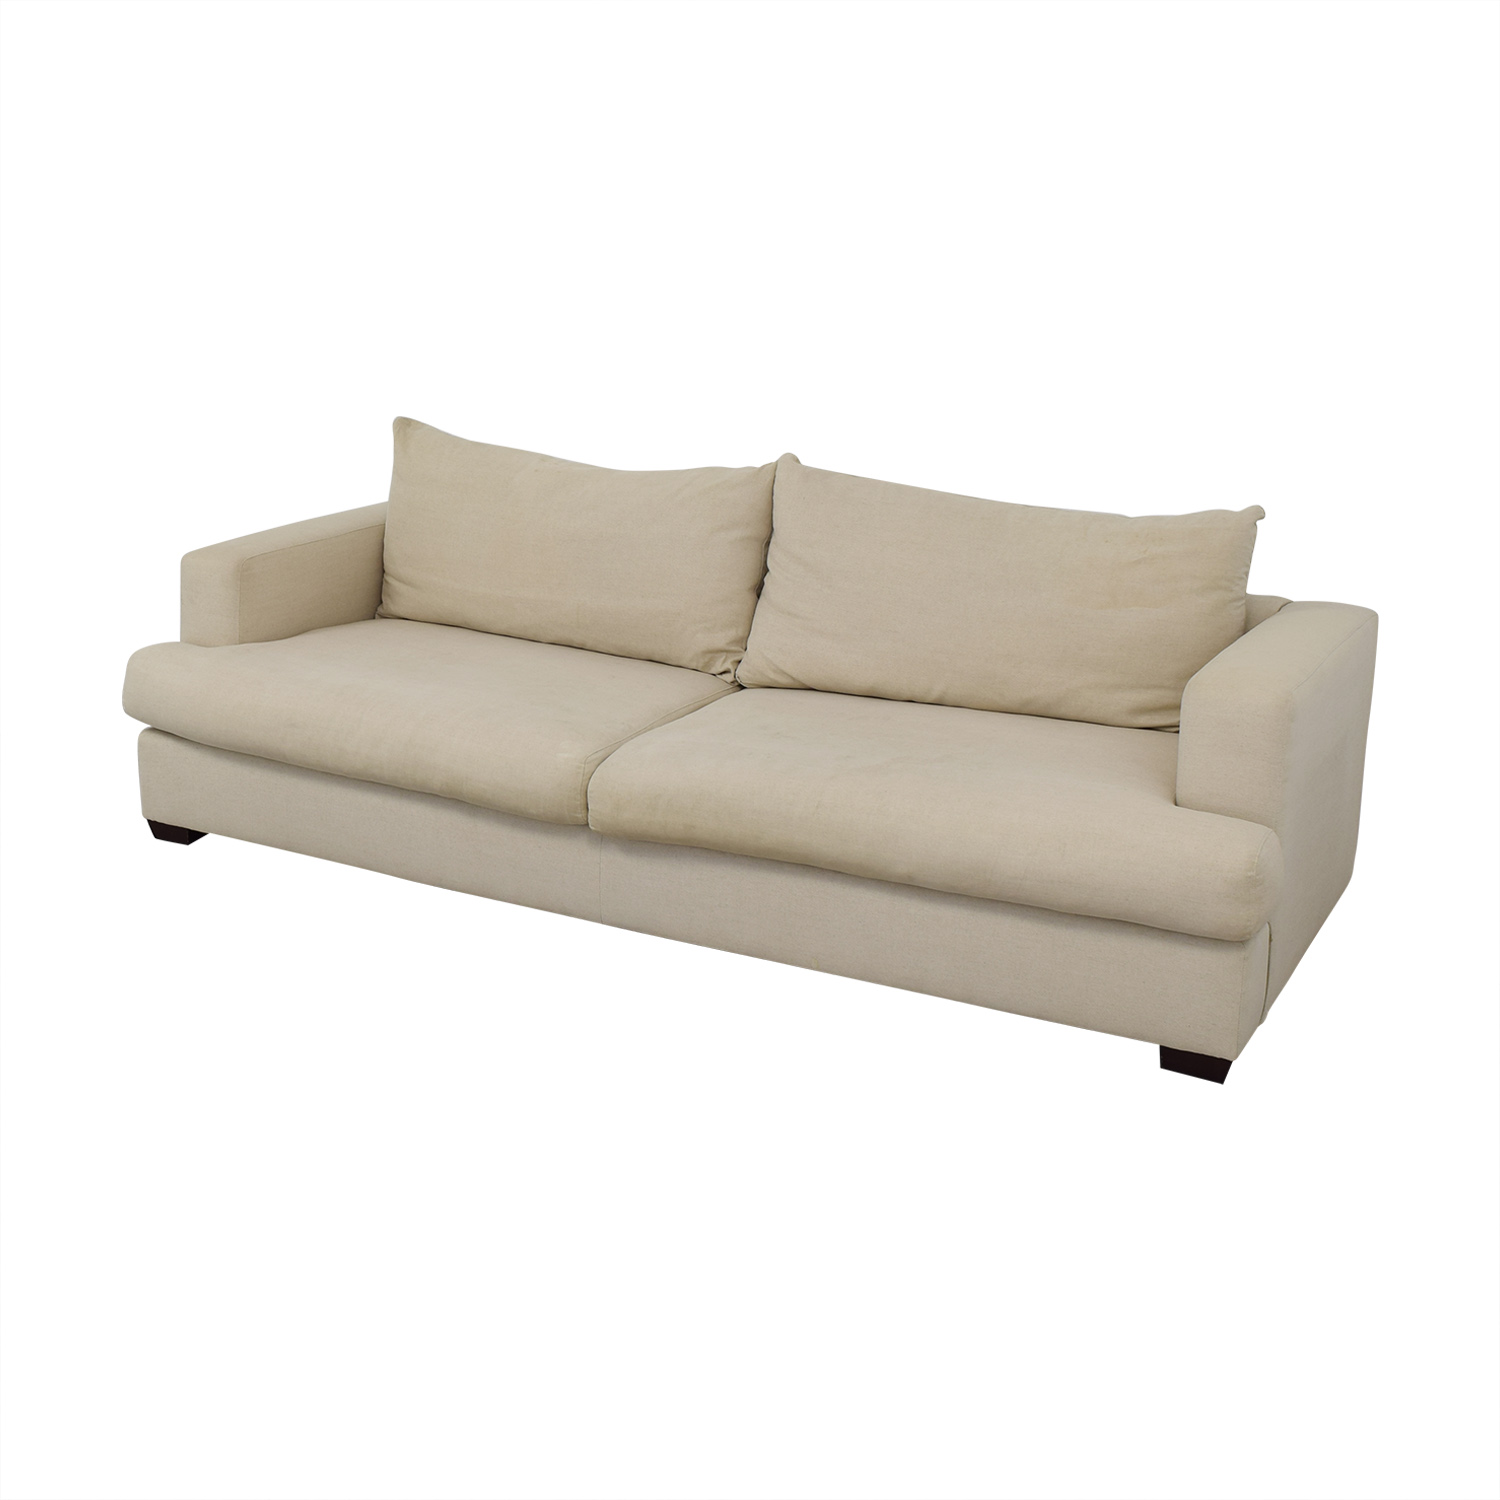 Pottery Barn Pottery Barn Grand Hampton Couch price